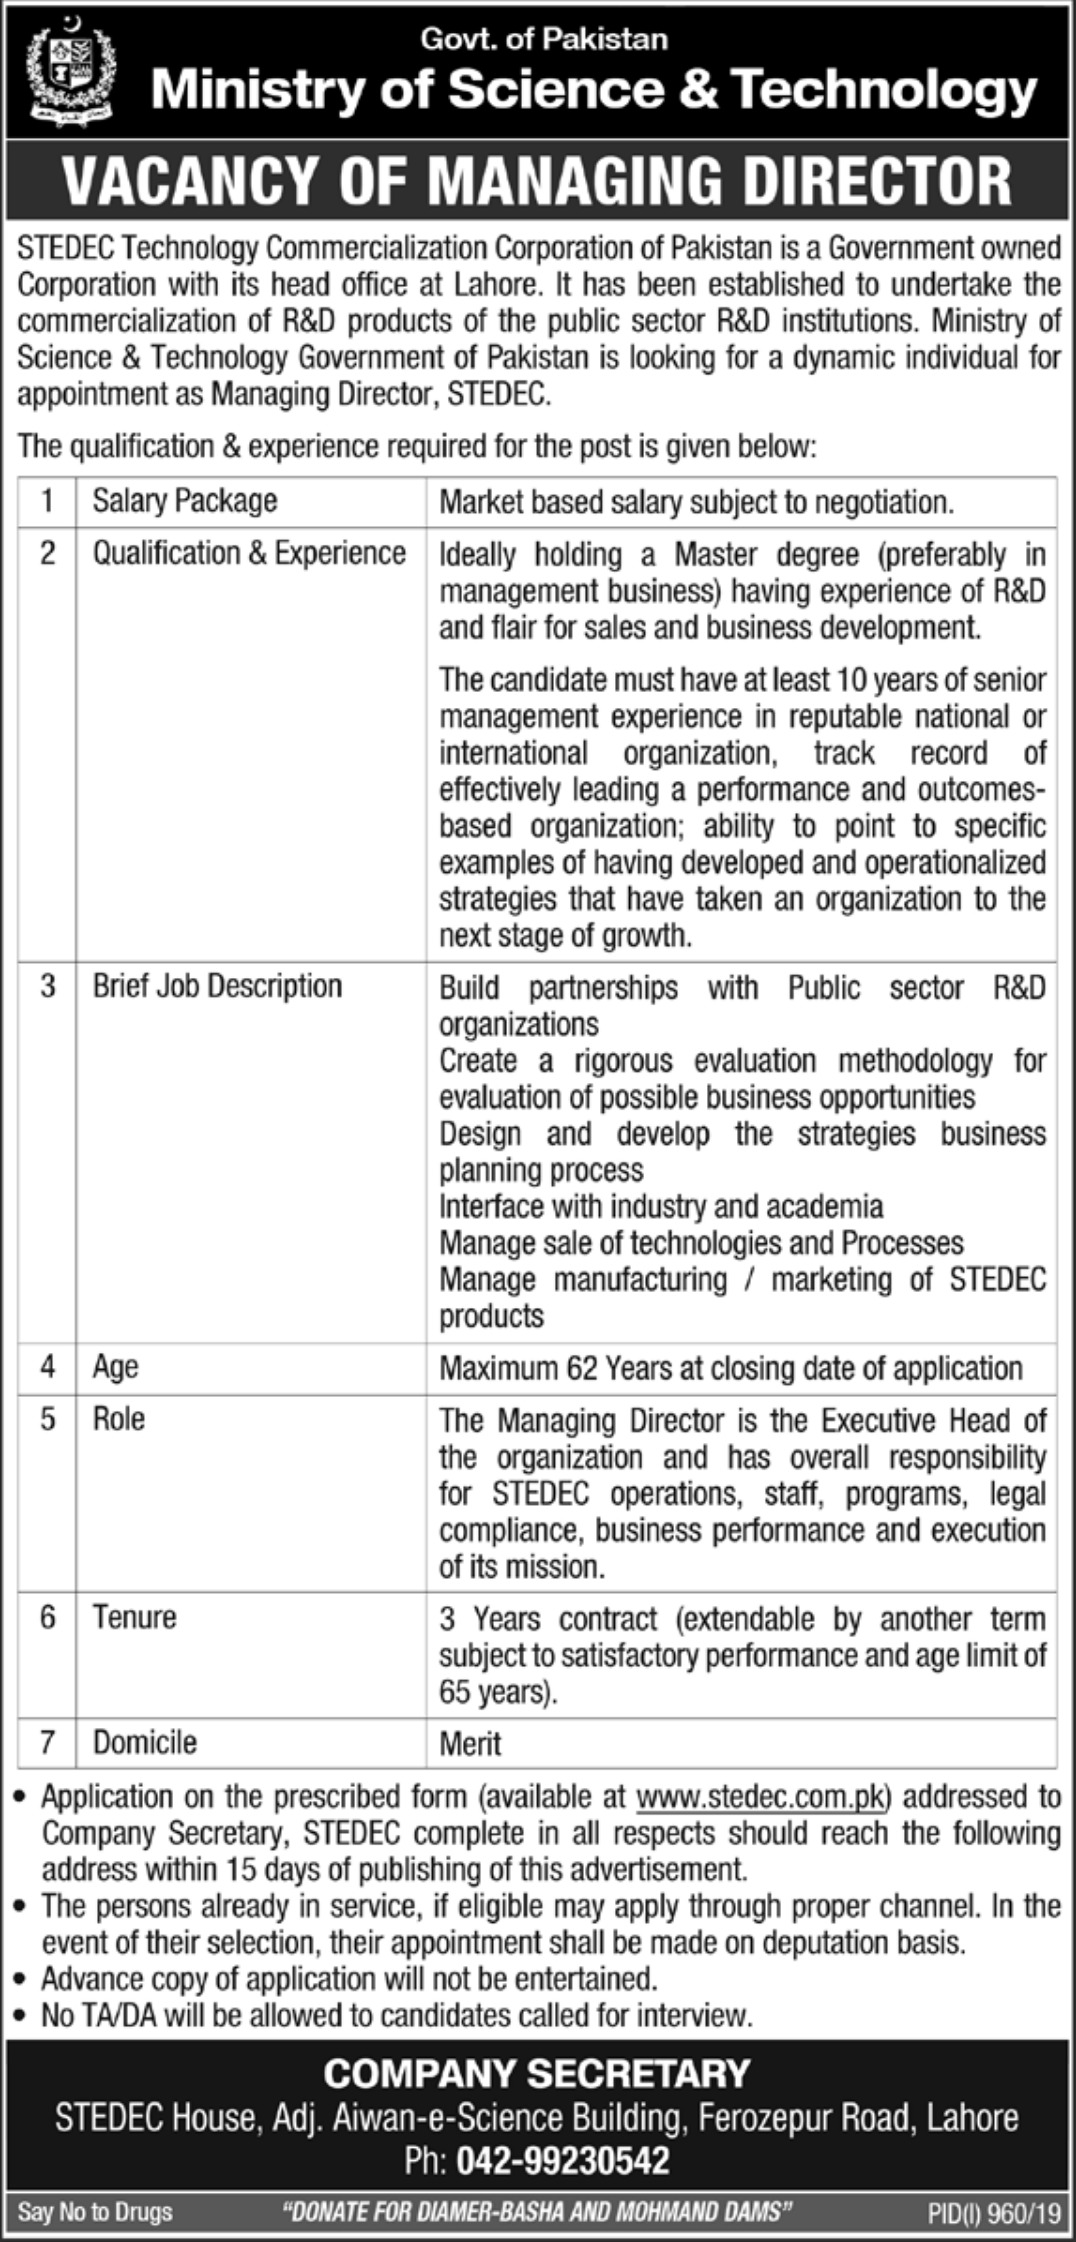 Ministry of Science & Technology Jobs 2019 Govt of Pakistan